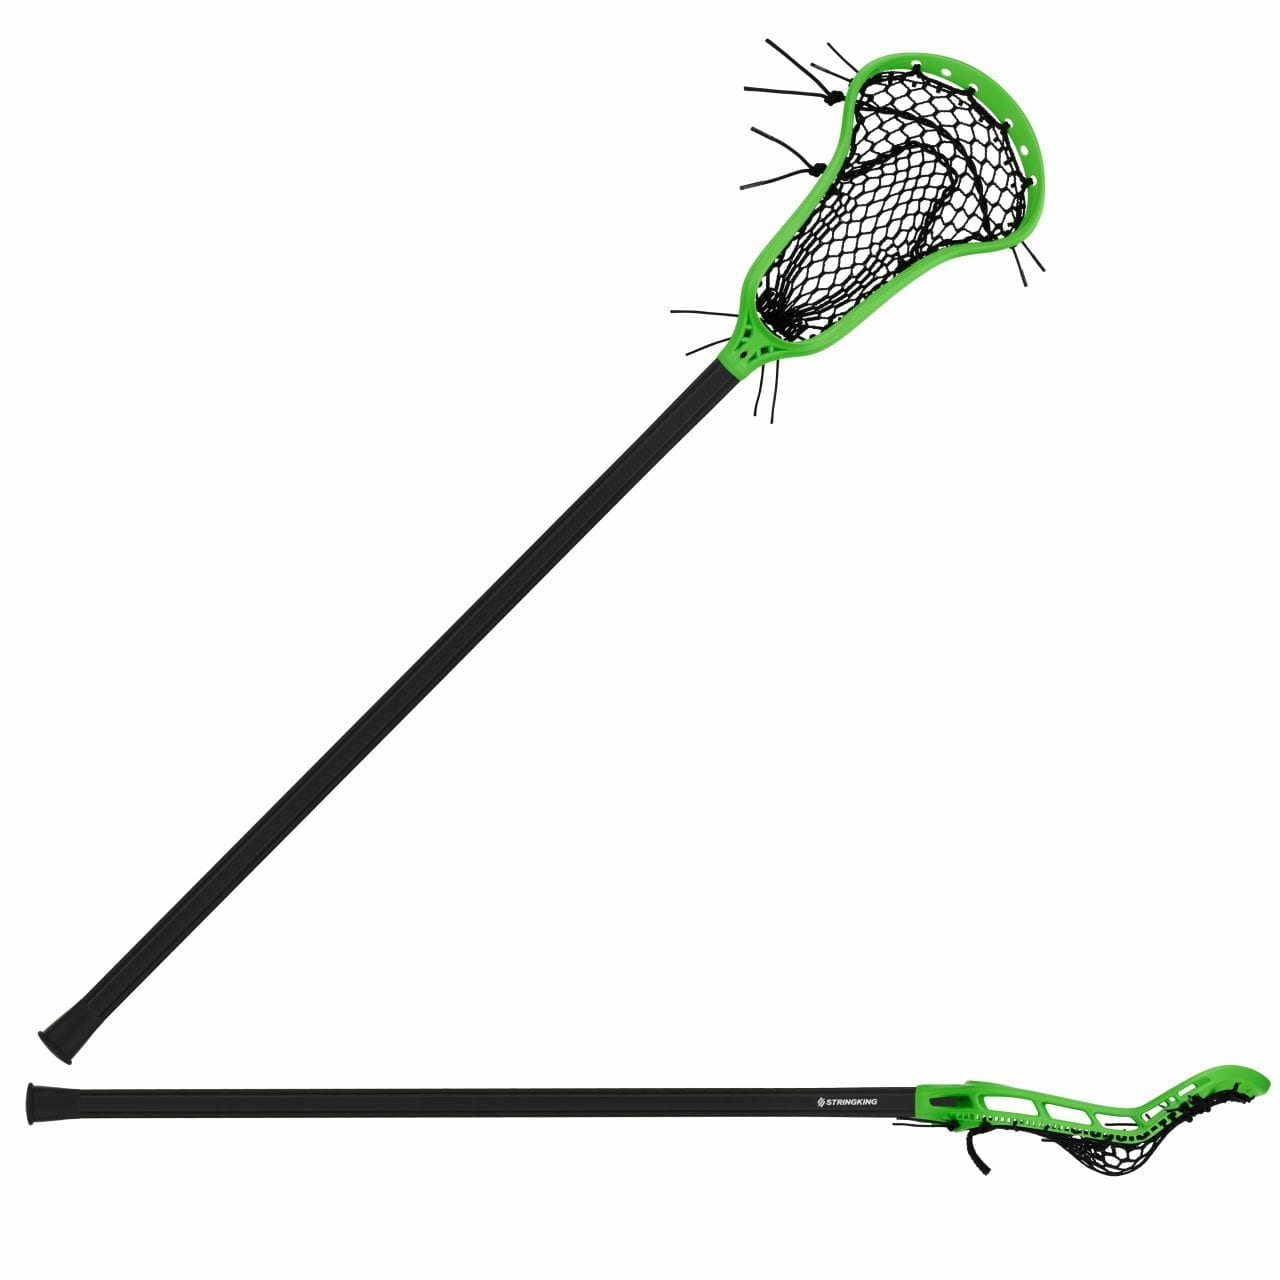 StringKing-Womens-Complete-2-Pro-Midfield-headSTRONG-Full-Stick-Black-Side-View.jpg